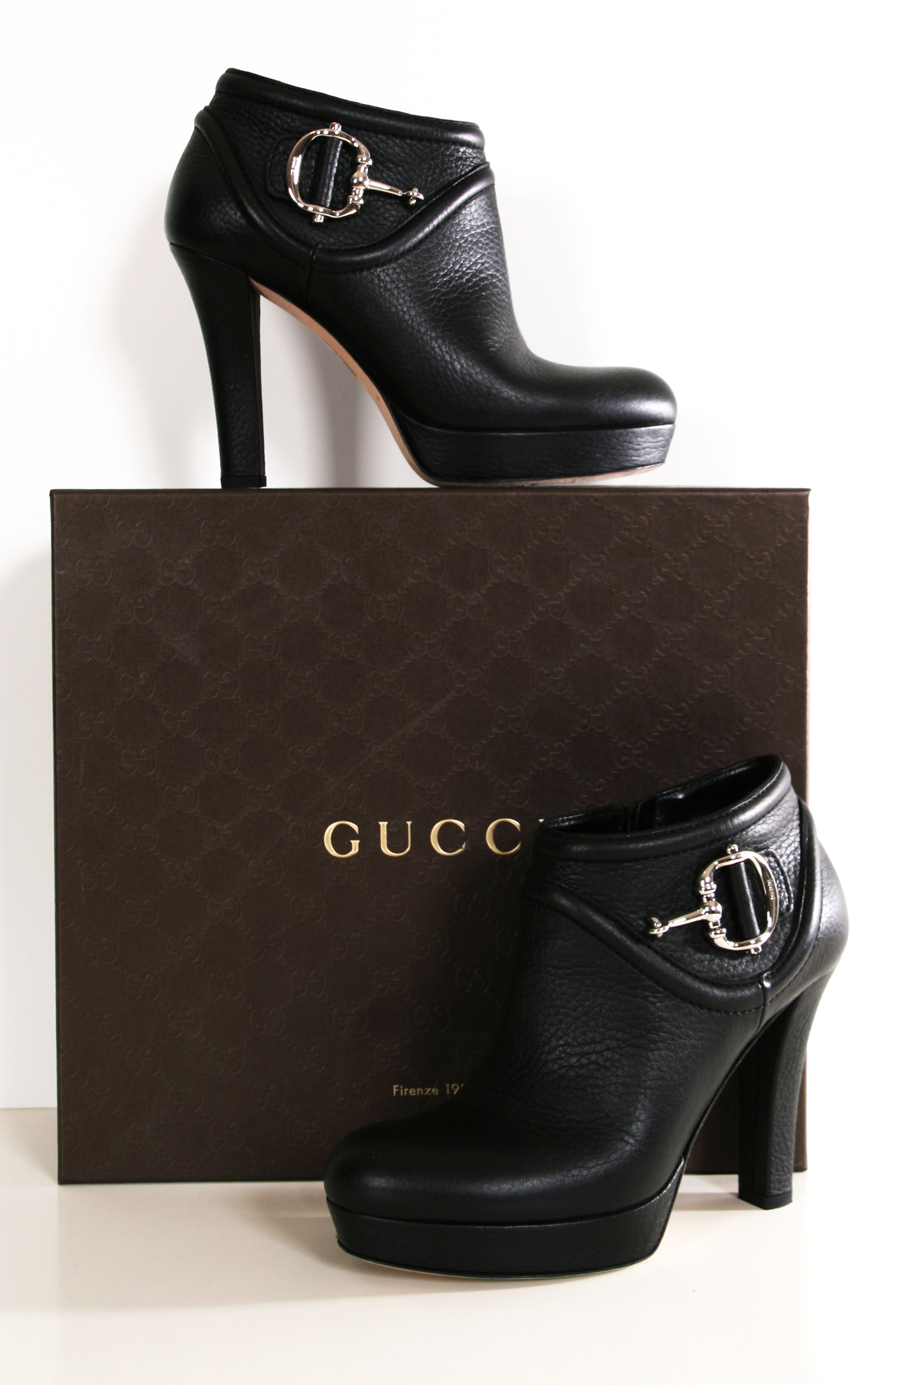 Shop For Gucci Boots From Ellenm On Shop Hers Gucci Boots Boots Bootie Boots